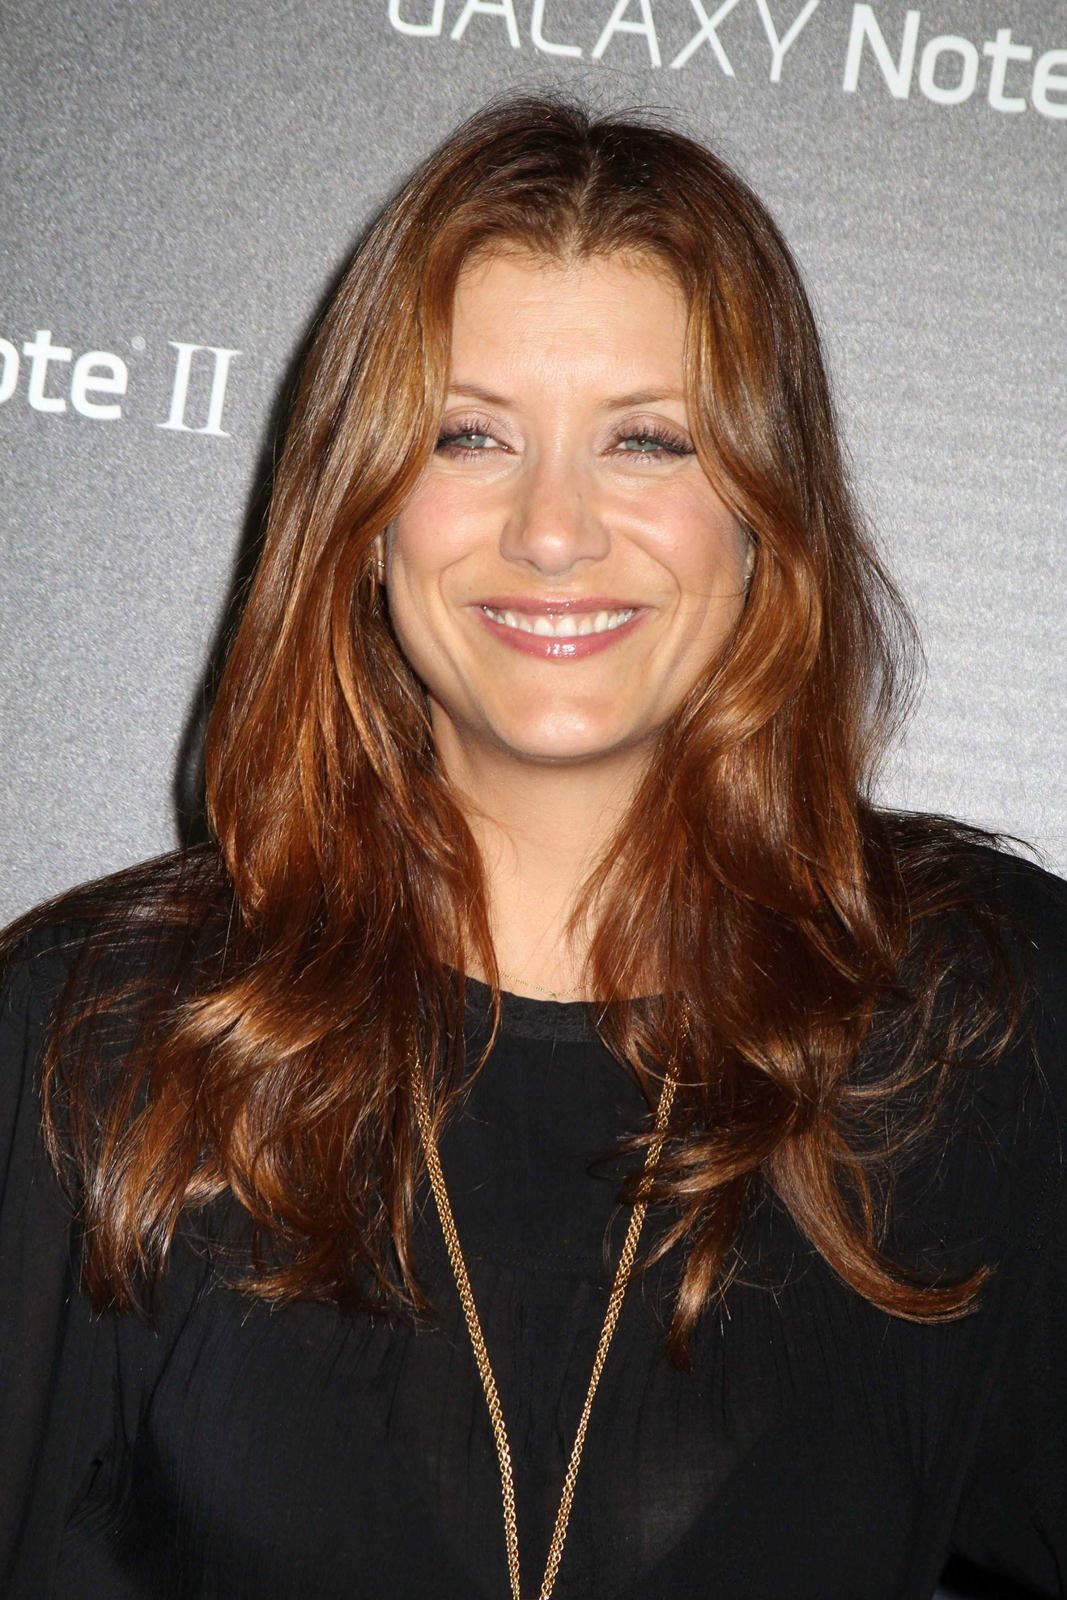 Kate Walsh Photo Gallery